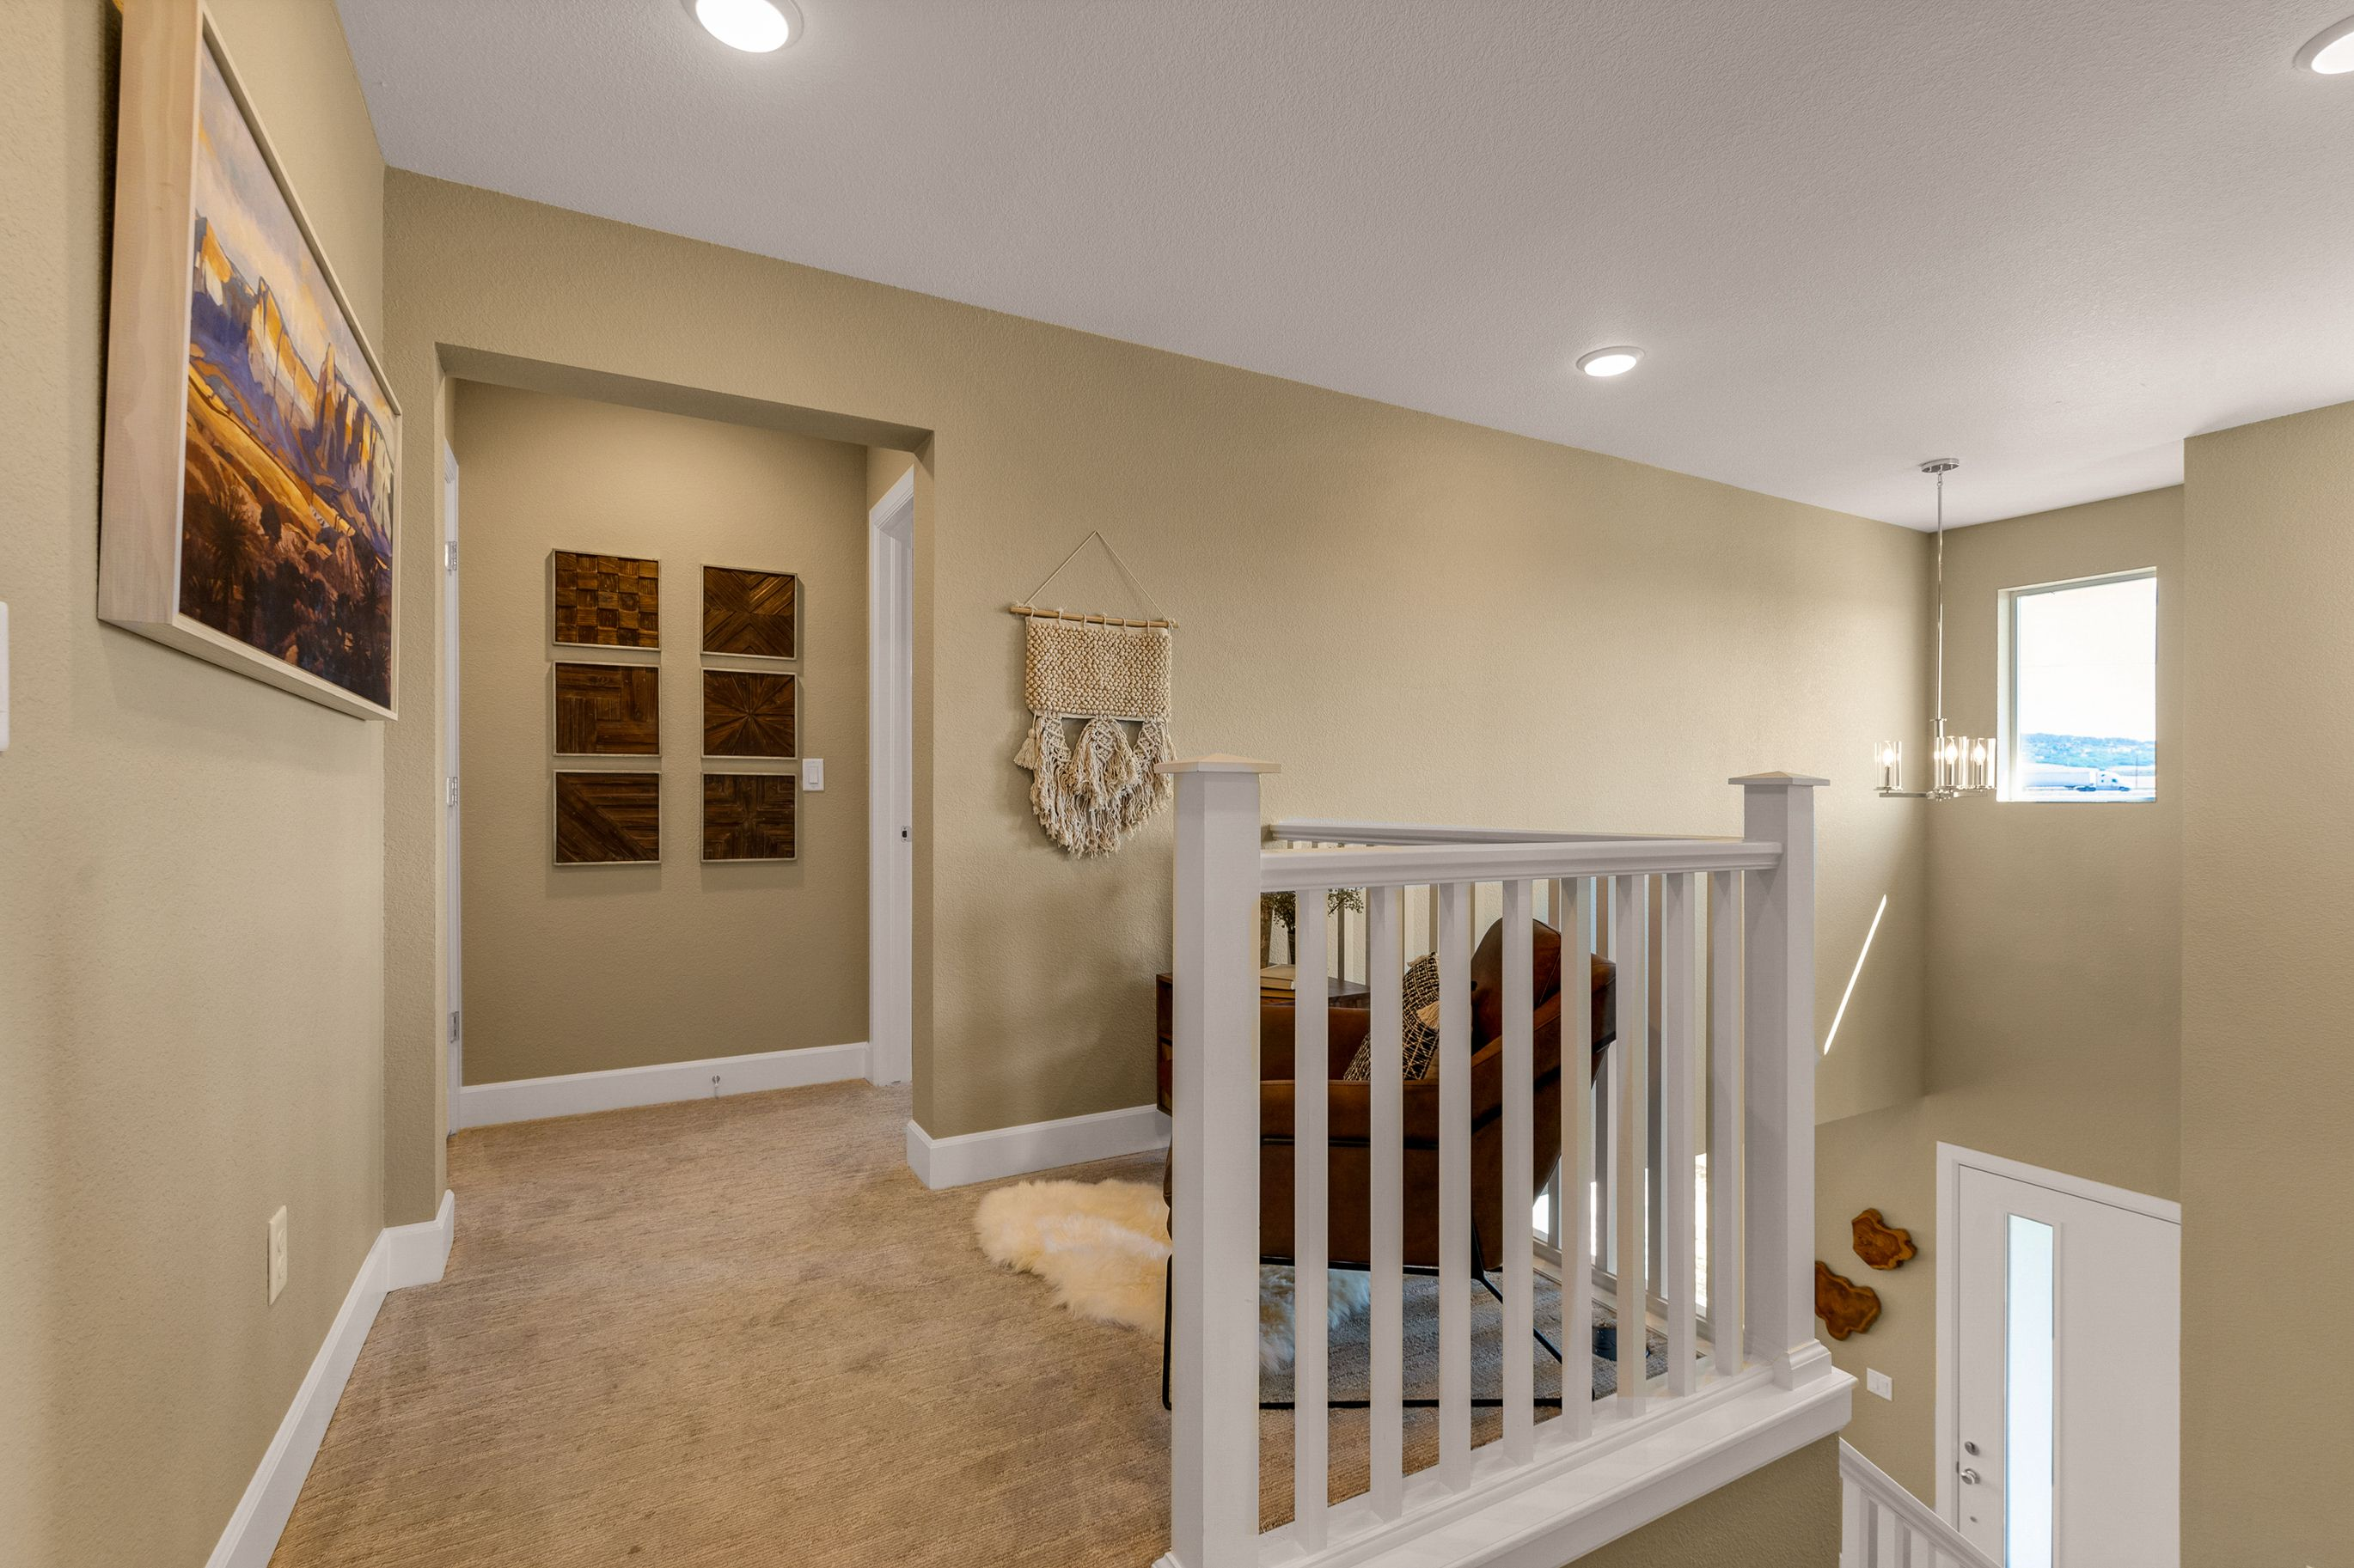 Bedroom featured in The Alpine By JM Weston Homes in Colorado Springs, CO